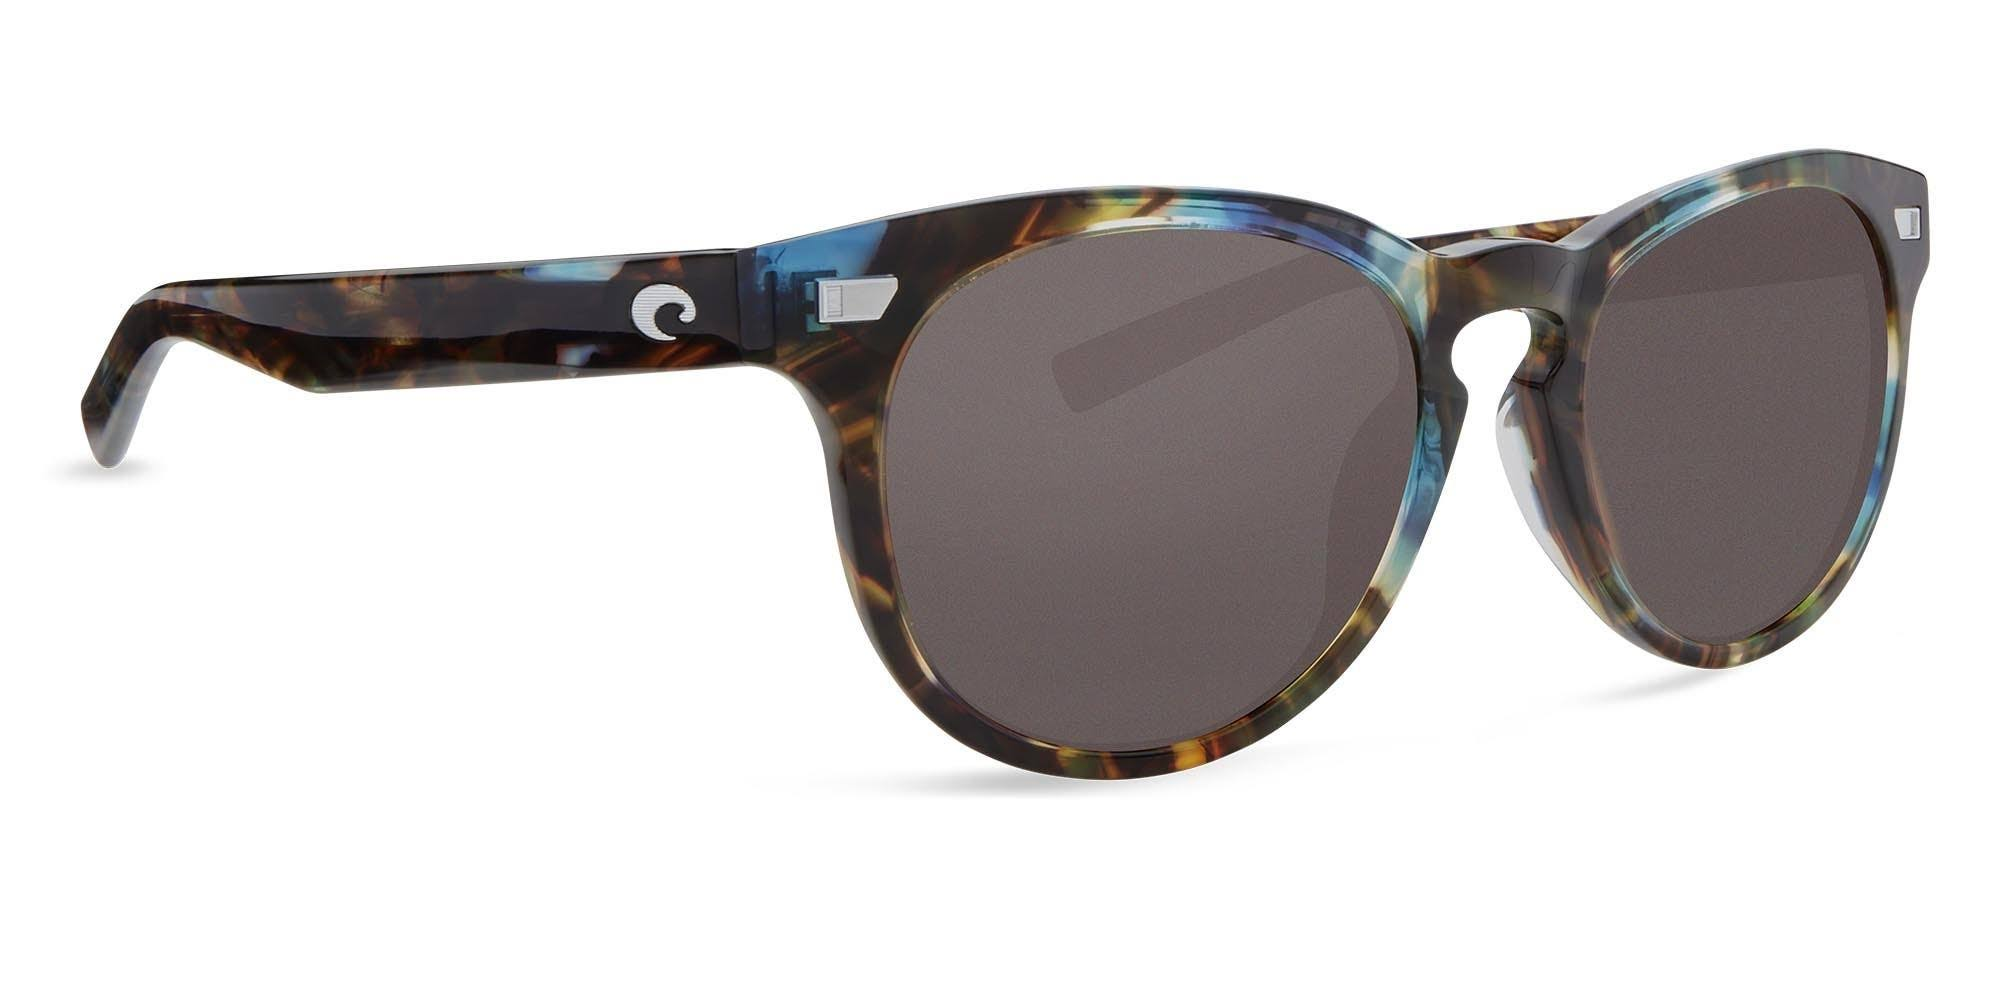 Costa Del Mar Collection Polarized Sunglasses - Ocean and Gray Glass